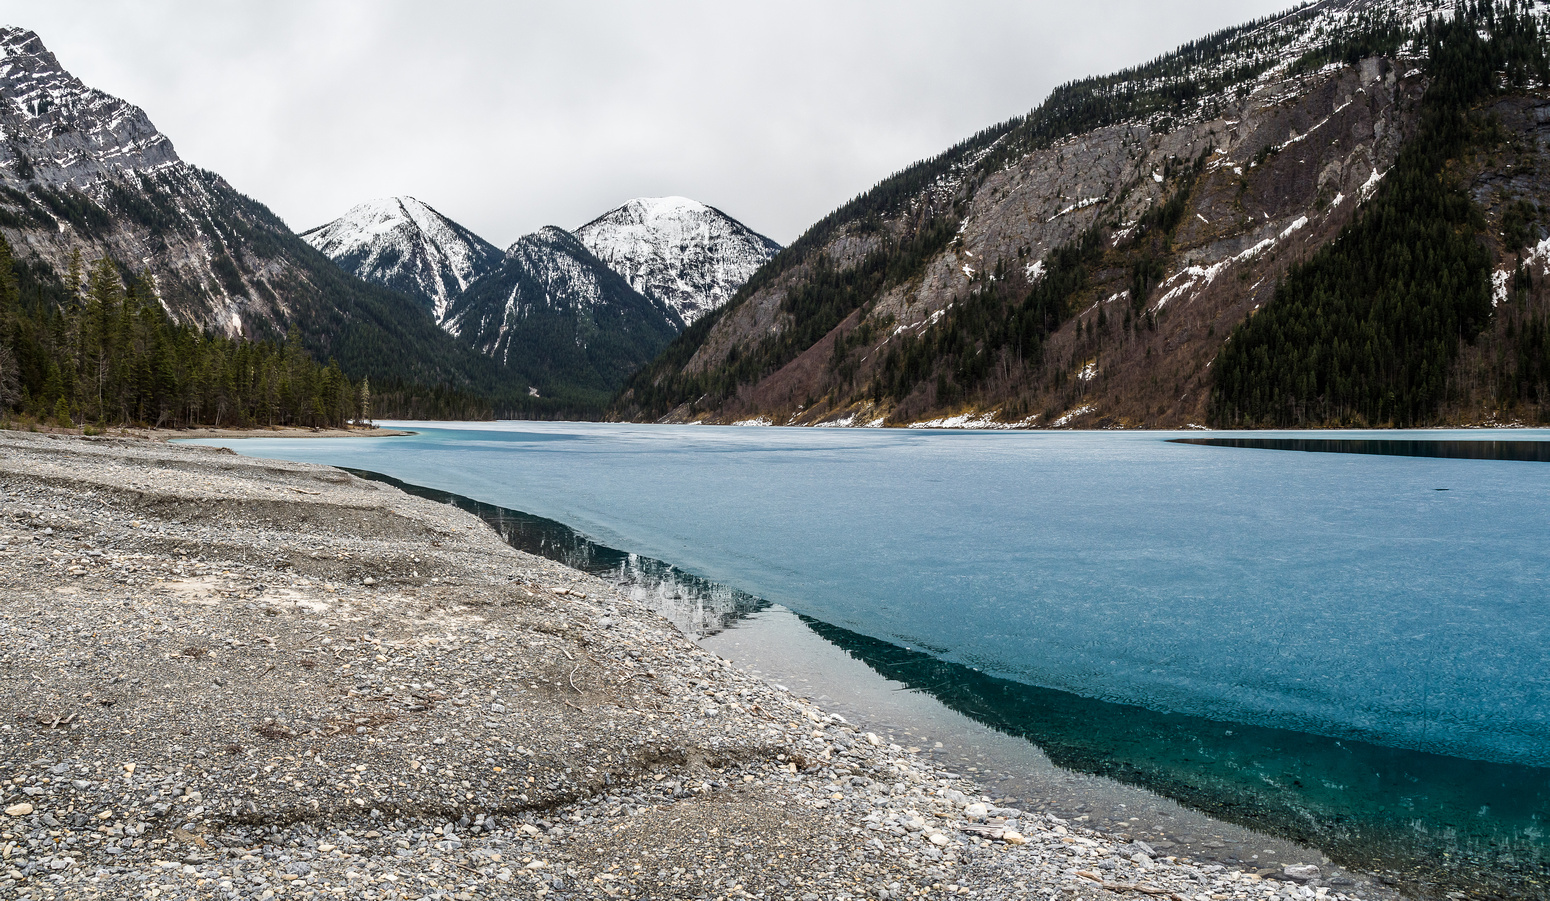 Kinney Lake is starting to look really thin now!